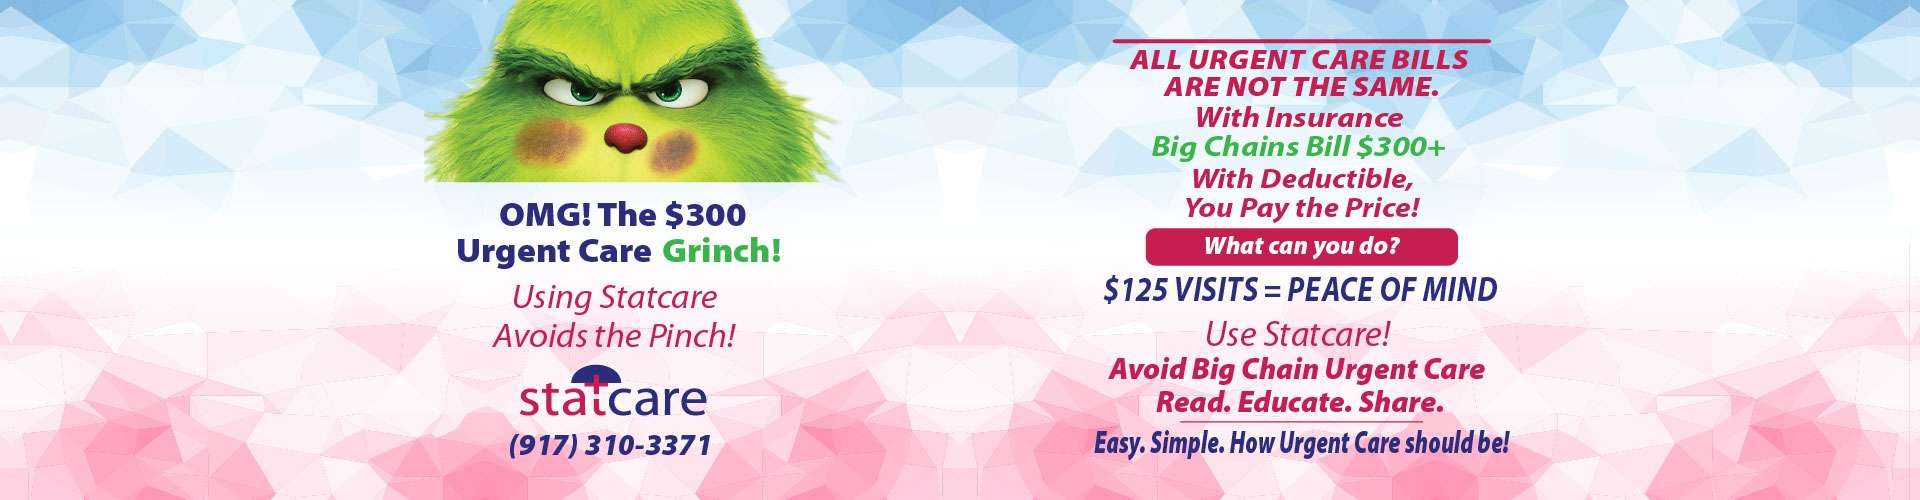 urgent care visit only 125 save from big name urgent care grinch